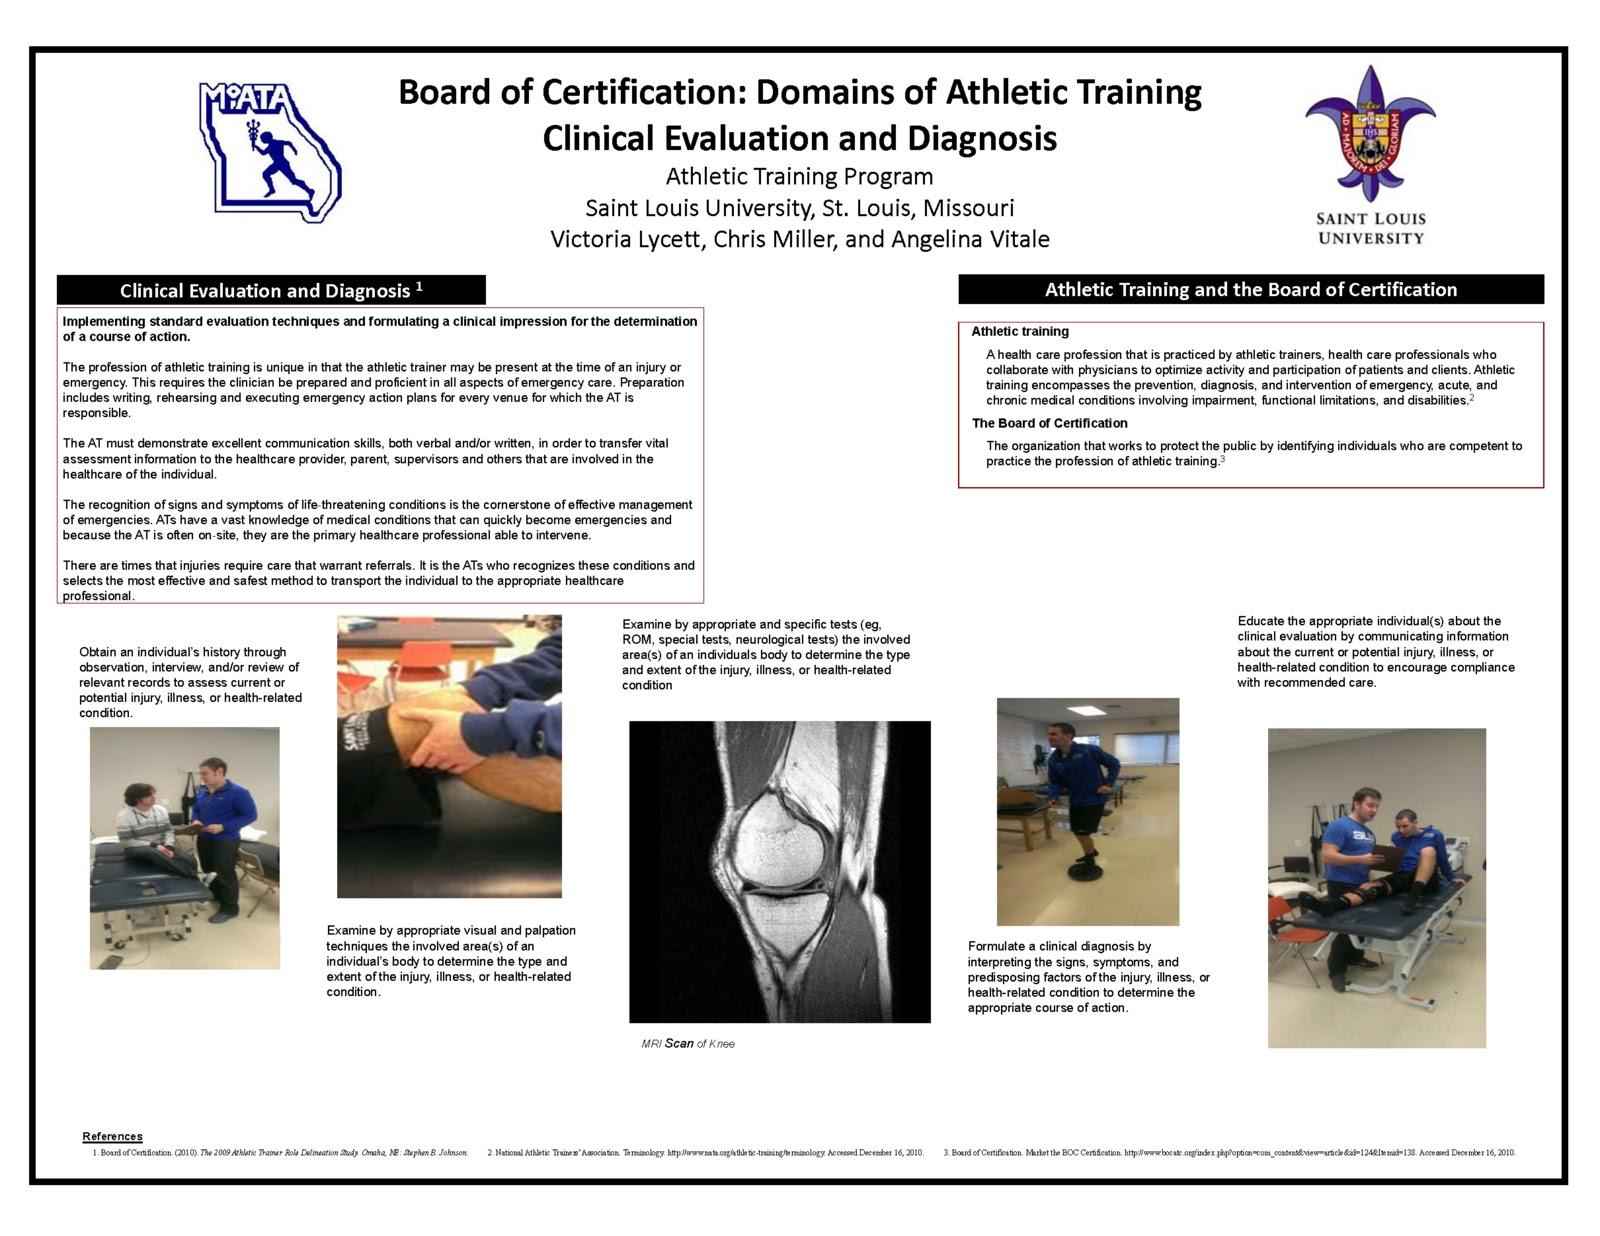 Saint louis university athletic training program march 2013 click on specific poster to view enlarged version 1betcityfo Choice Image